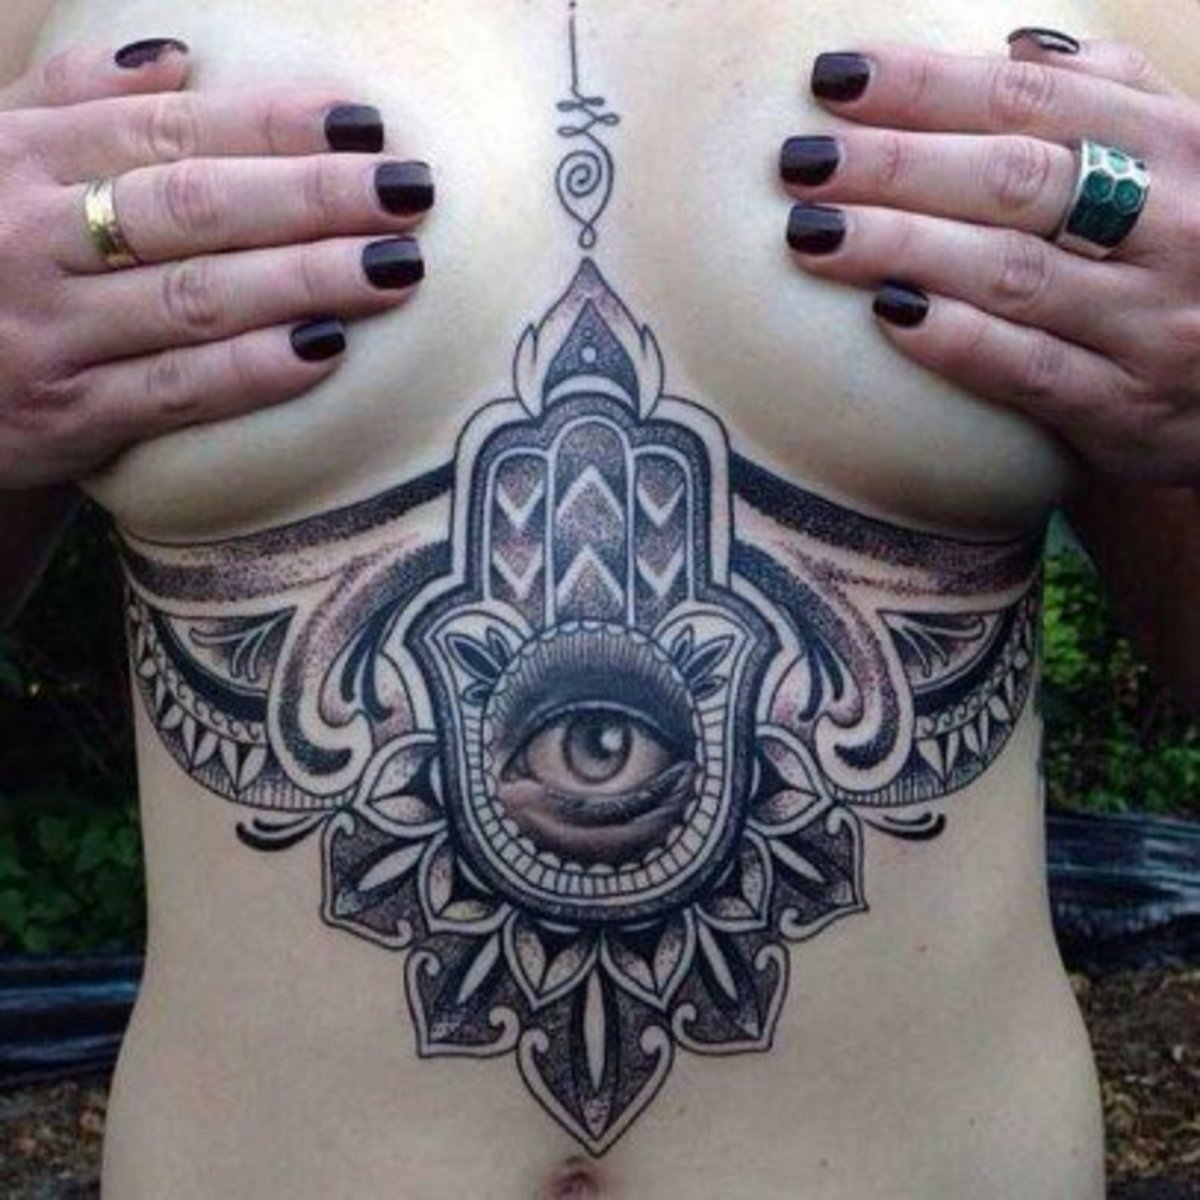 Tattoos - Inked Magazine - Tattoo Ideas